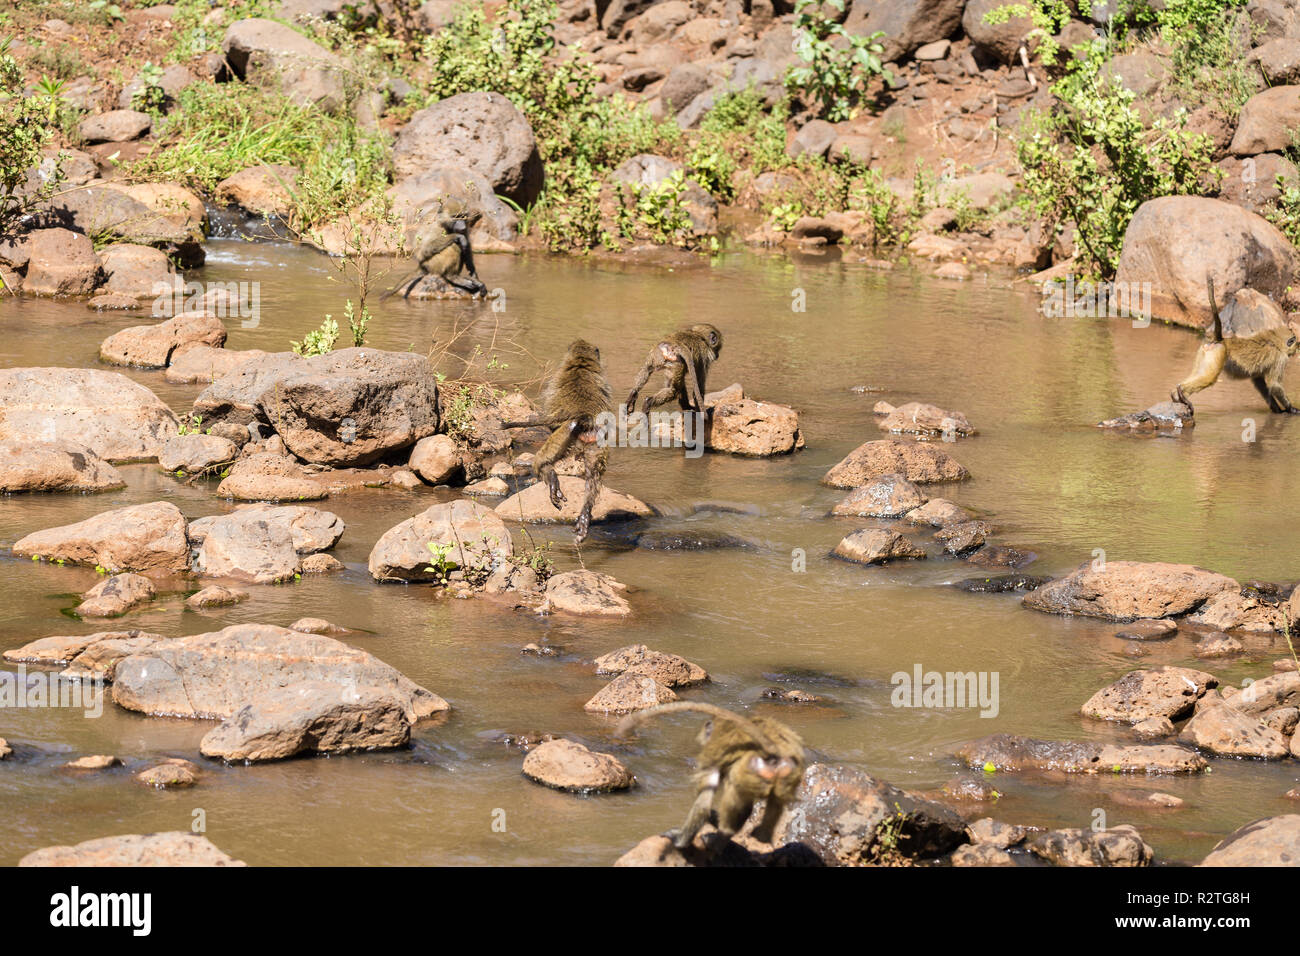 Baboons playing in river - Stock Image